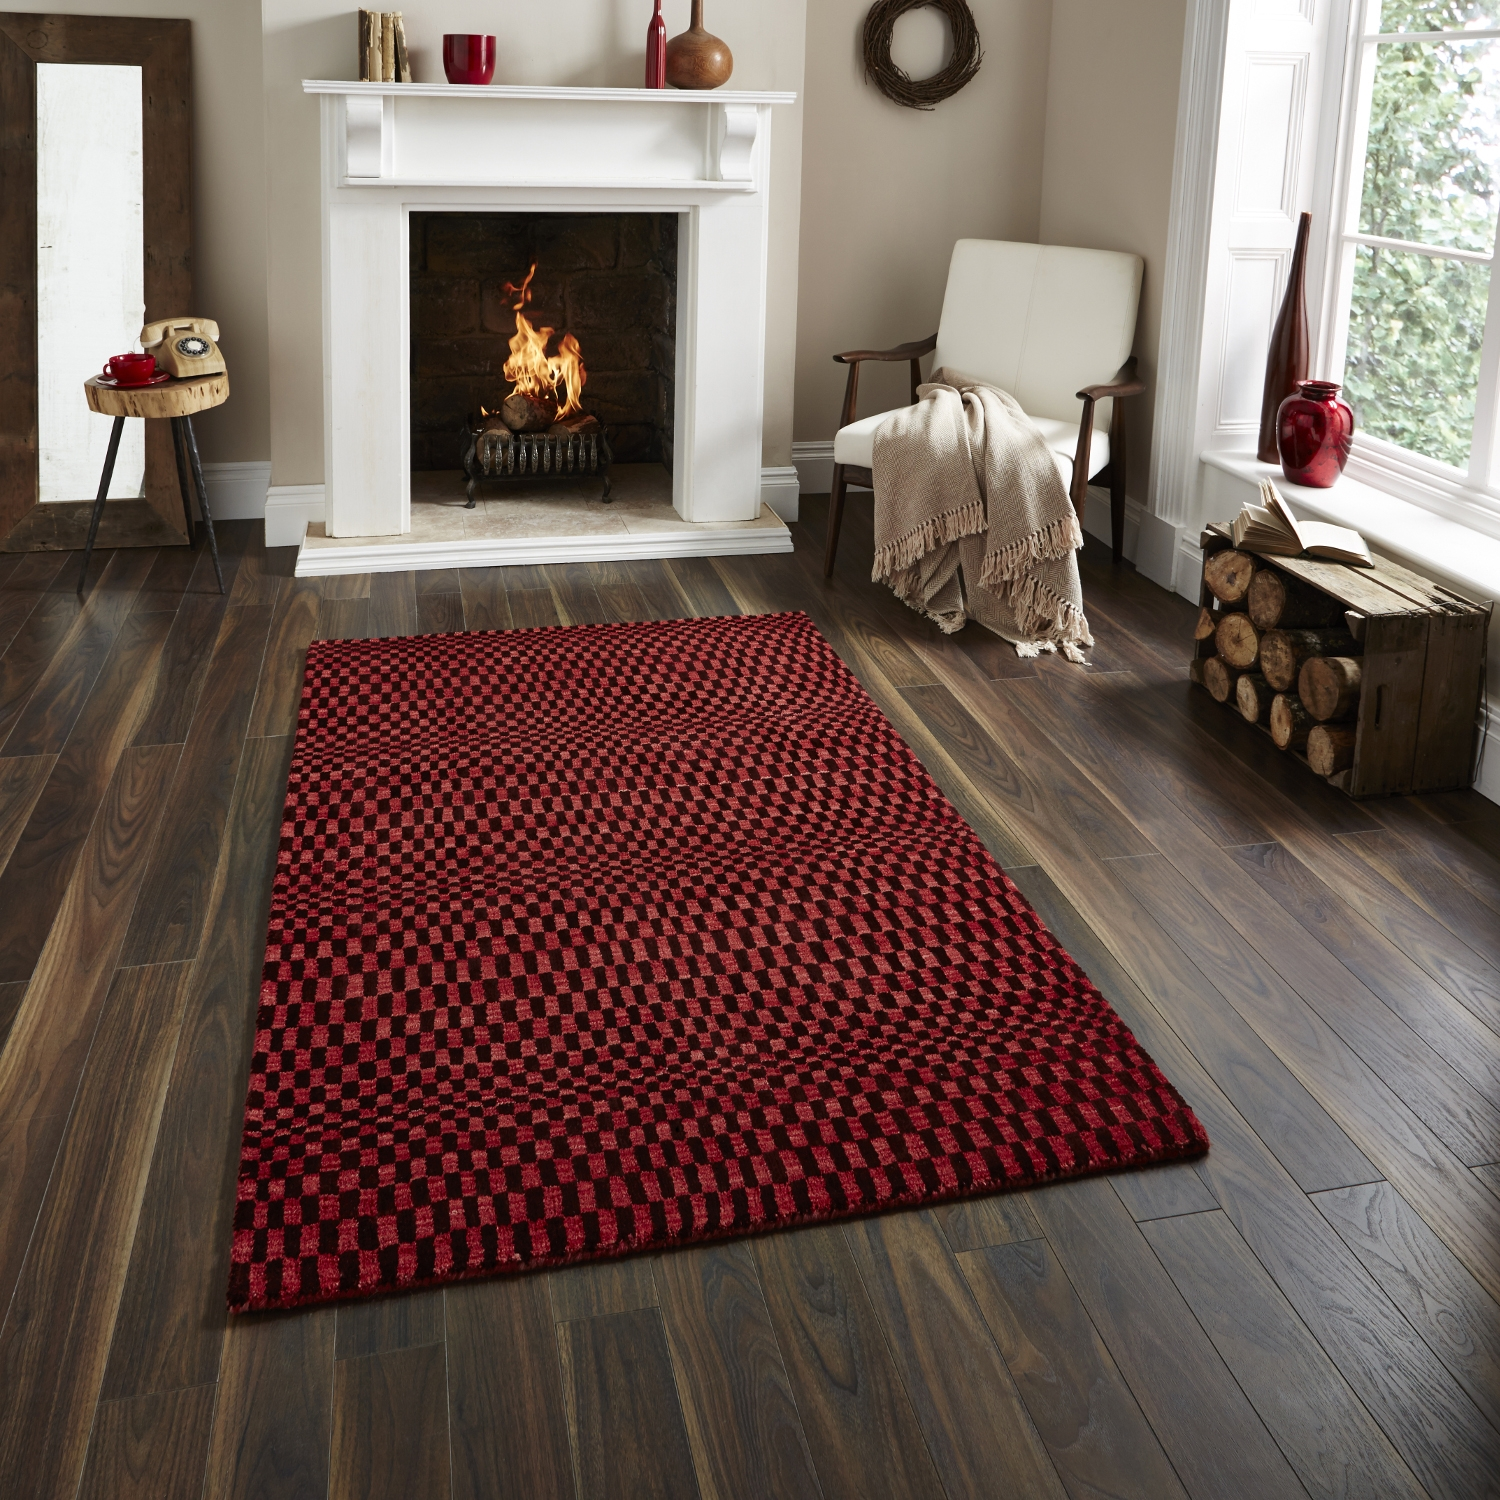 Red Floor Rugs Home Decors Collection Within Large Floor Rugs (Image 11 of 15)